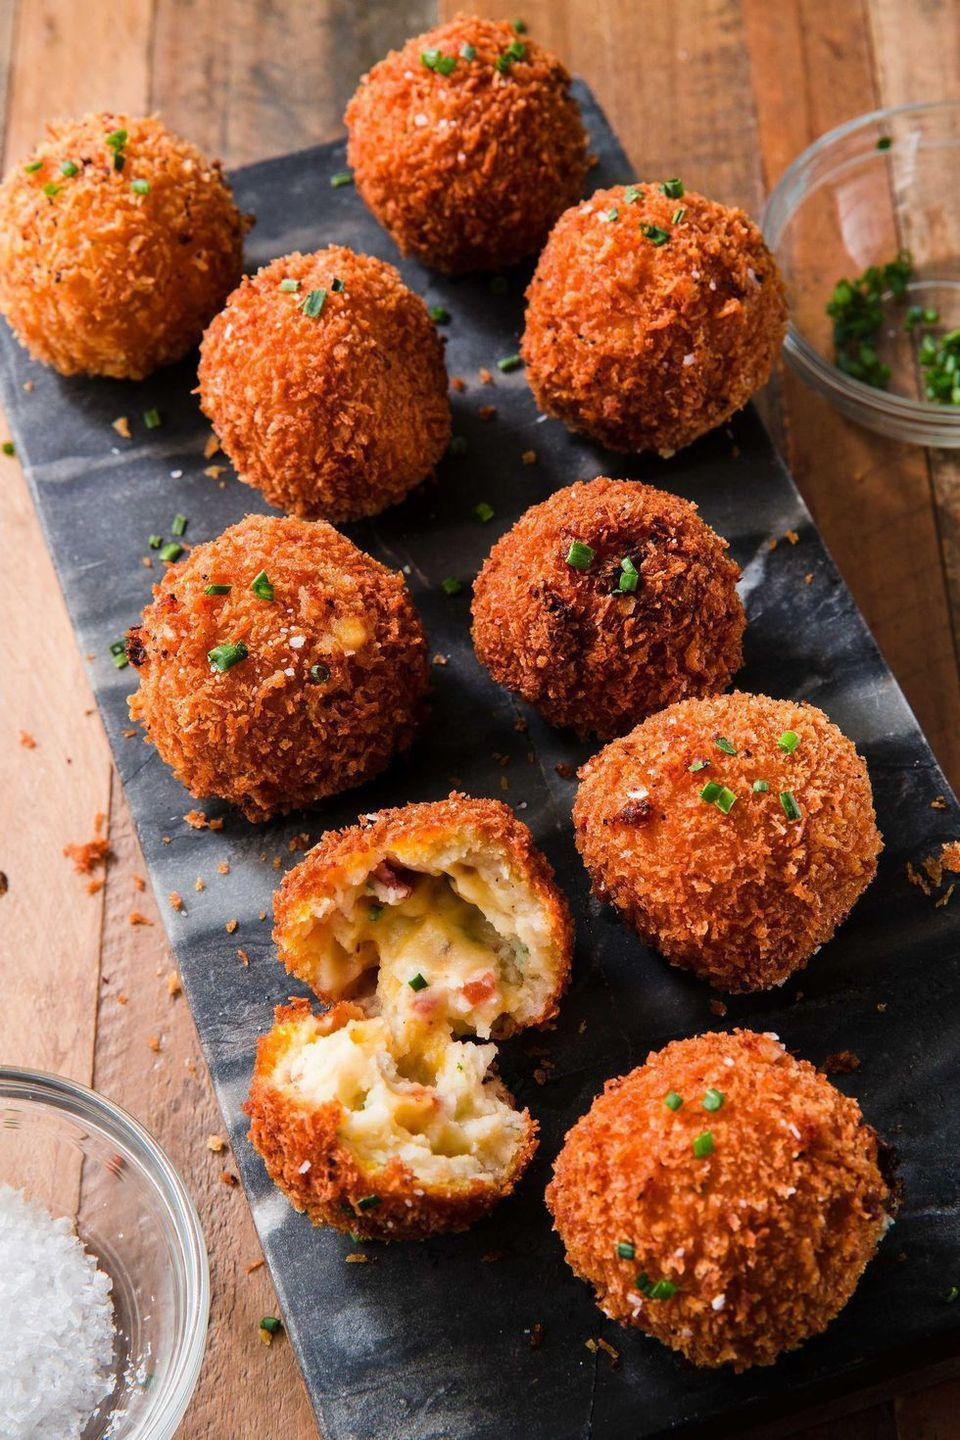 """<p>Even more decadent than the potatoes served on Thanksgiving, these fried beauties are taken to the next level with bacon and cheddar cheese. </p><p><em><a href=""""https://www.delish.com/cooking/recipe-ideas/a22566735/fried-mashed-potato-balls-recipe/"""" rel=""""nofollow noopener"""" target=""""_blank"""" data-ylk=""""slk:Get the recipe from Delish »"""" class=""""link rapid-noclick-resp"""">Get the recipe from Delish »</a></em></p>"""